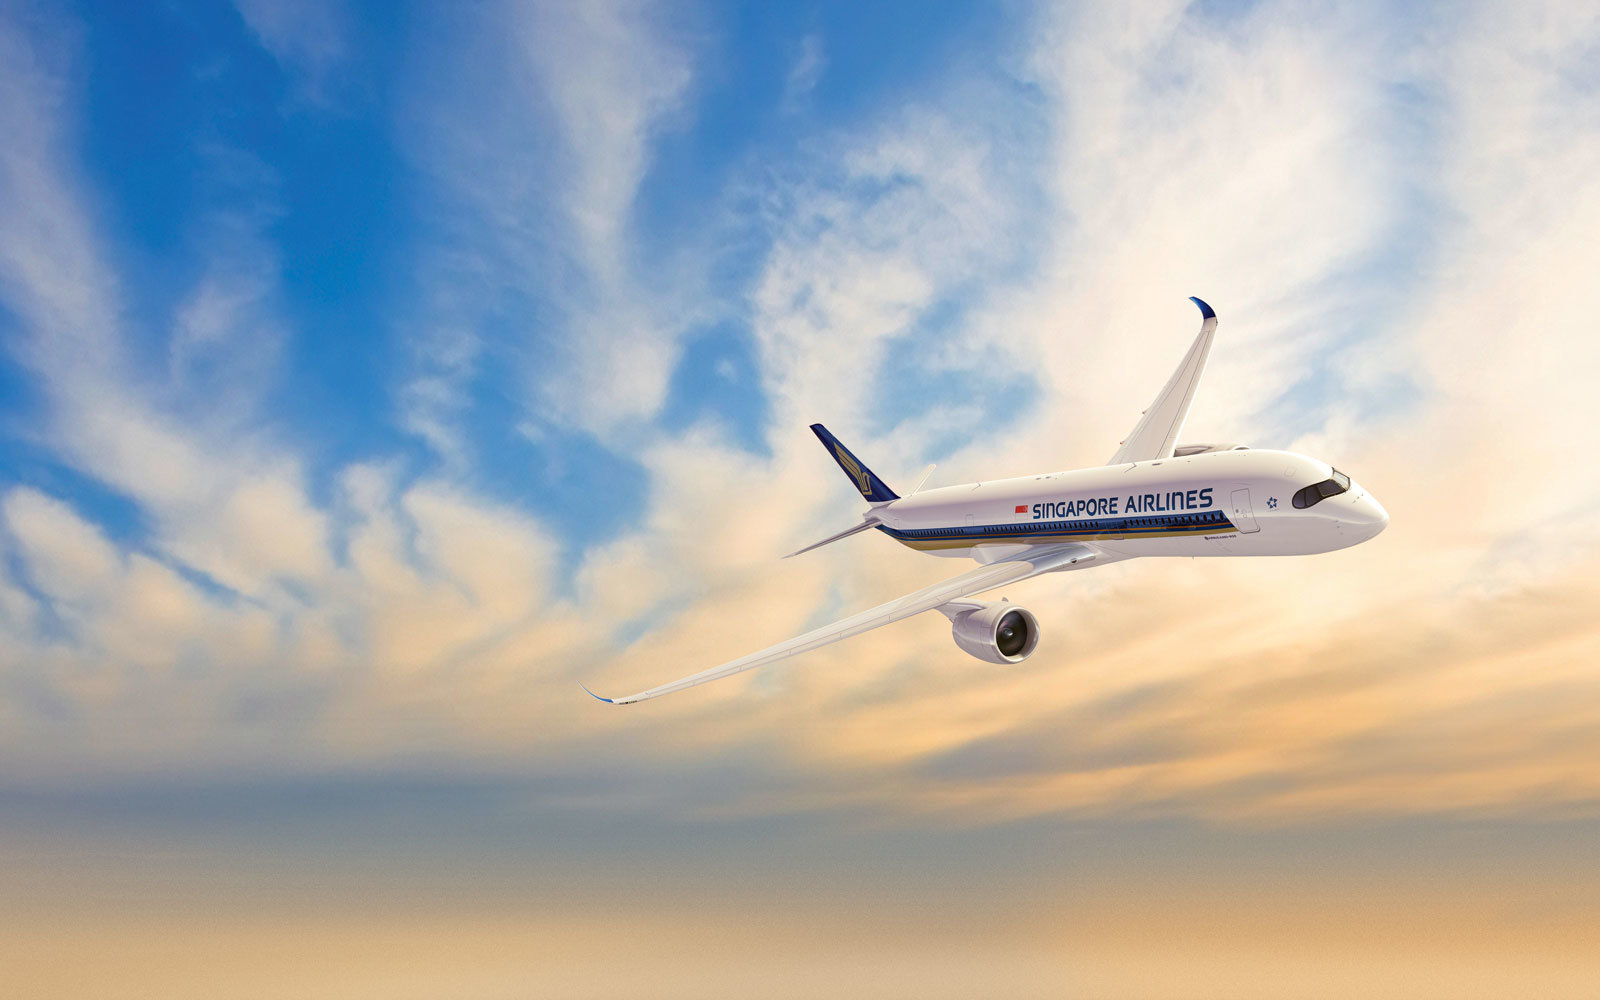 Singapore Airlines Named The Best In The World For The